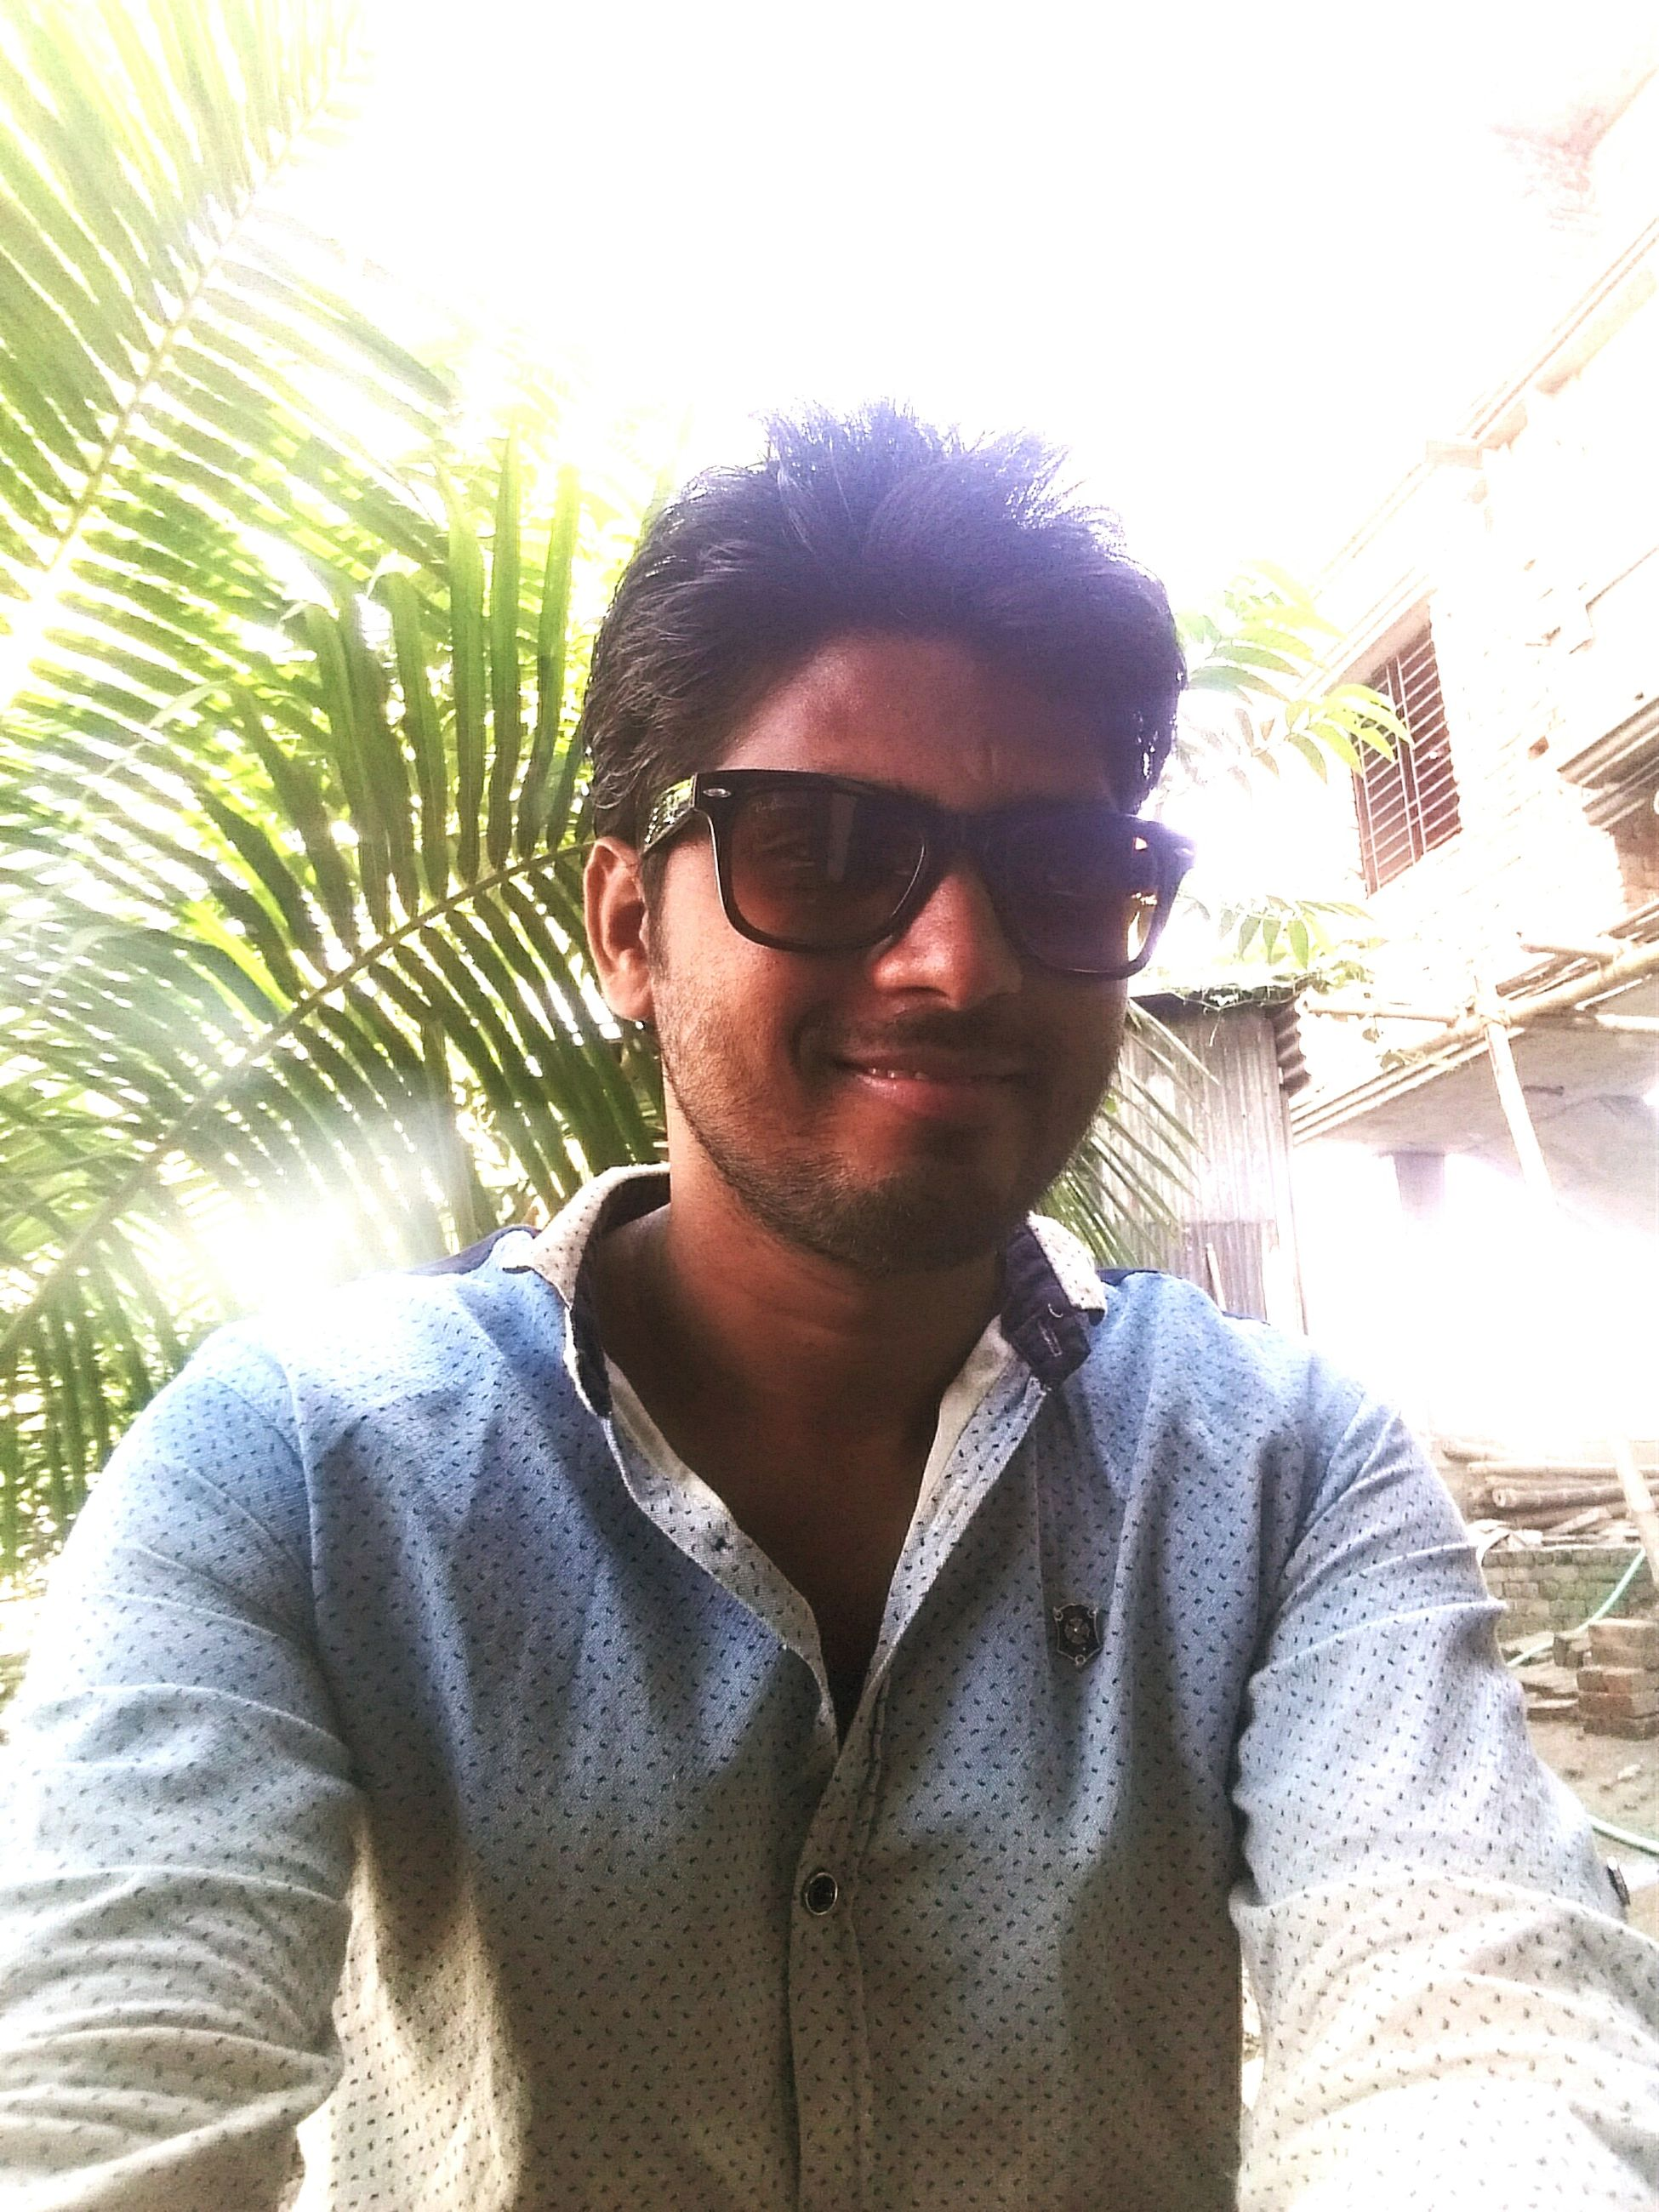 sunglasses, lifestyles, portrait, sunlight, young adult, lens flare, casual clothing, looking at camera, front view, one person, one young man only, outdoors, leisure activity, confidence, tree, day, happiness, smiling, real people, adults only, only men, close-up, adult, one man only, nature, people, sky, trendy